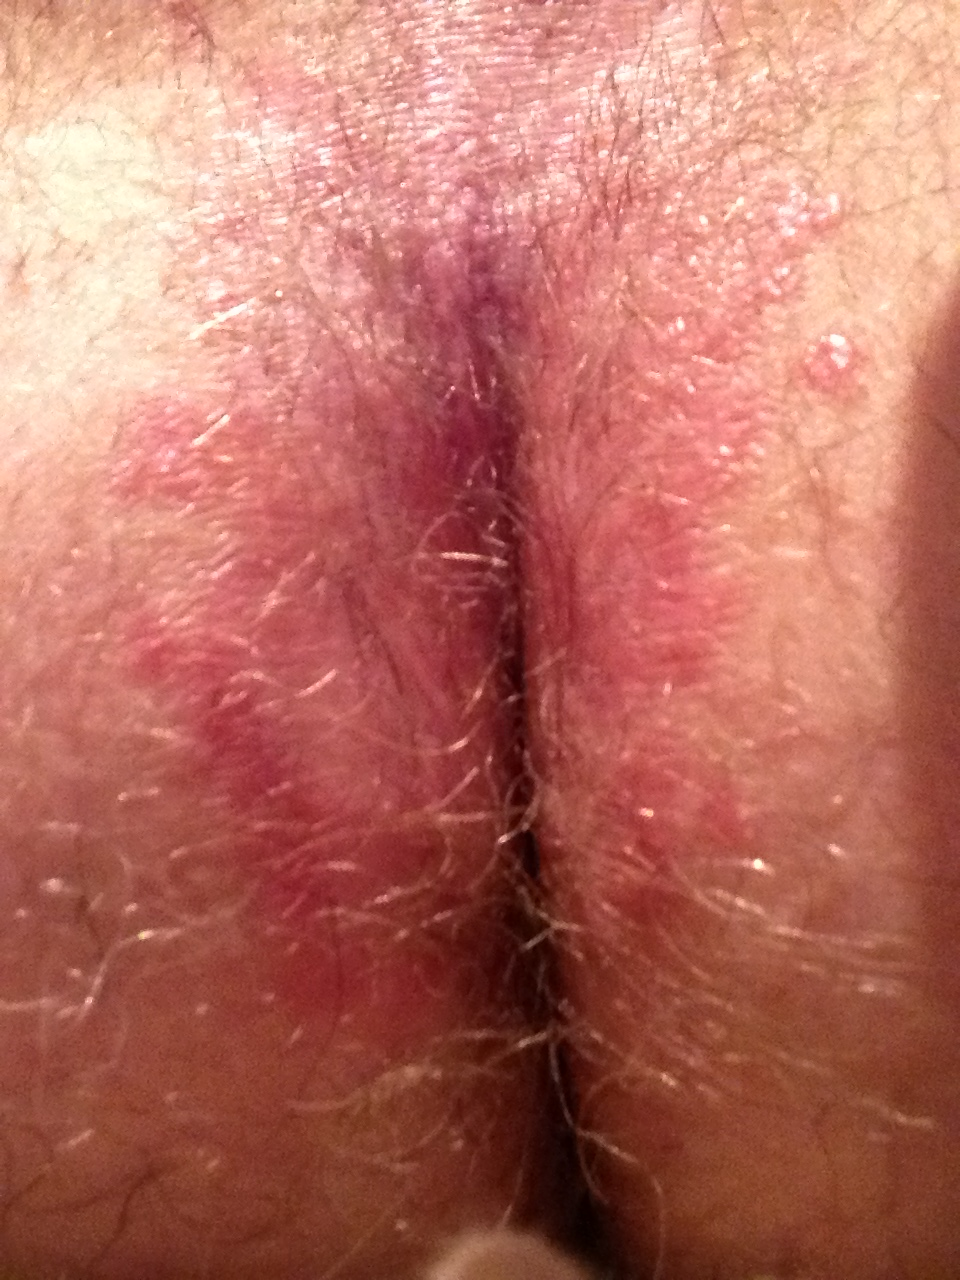 itching after sex in grown area